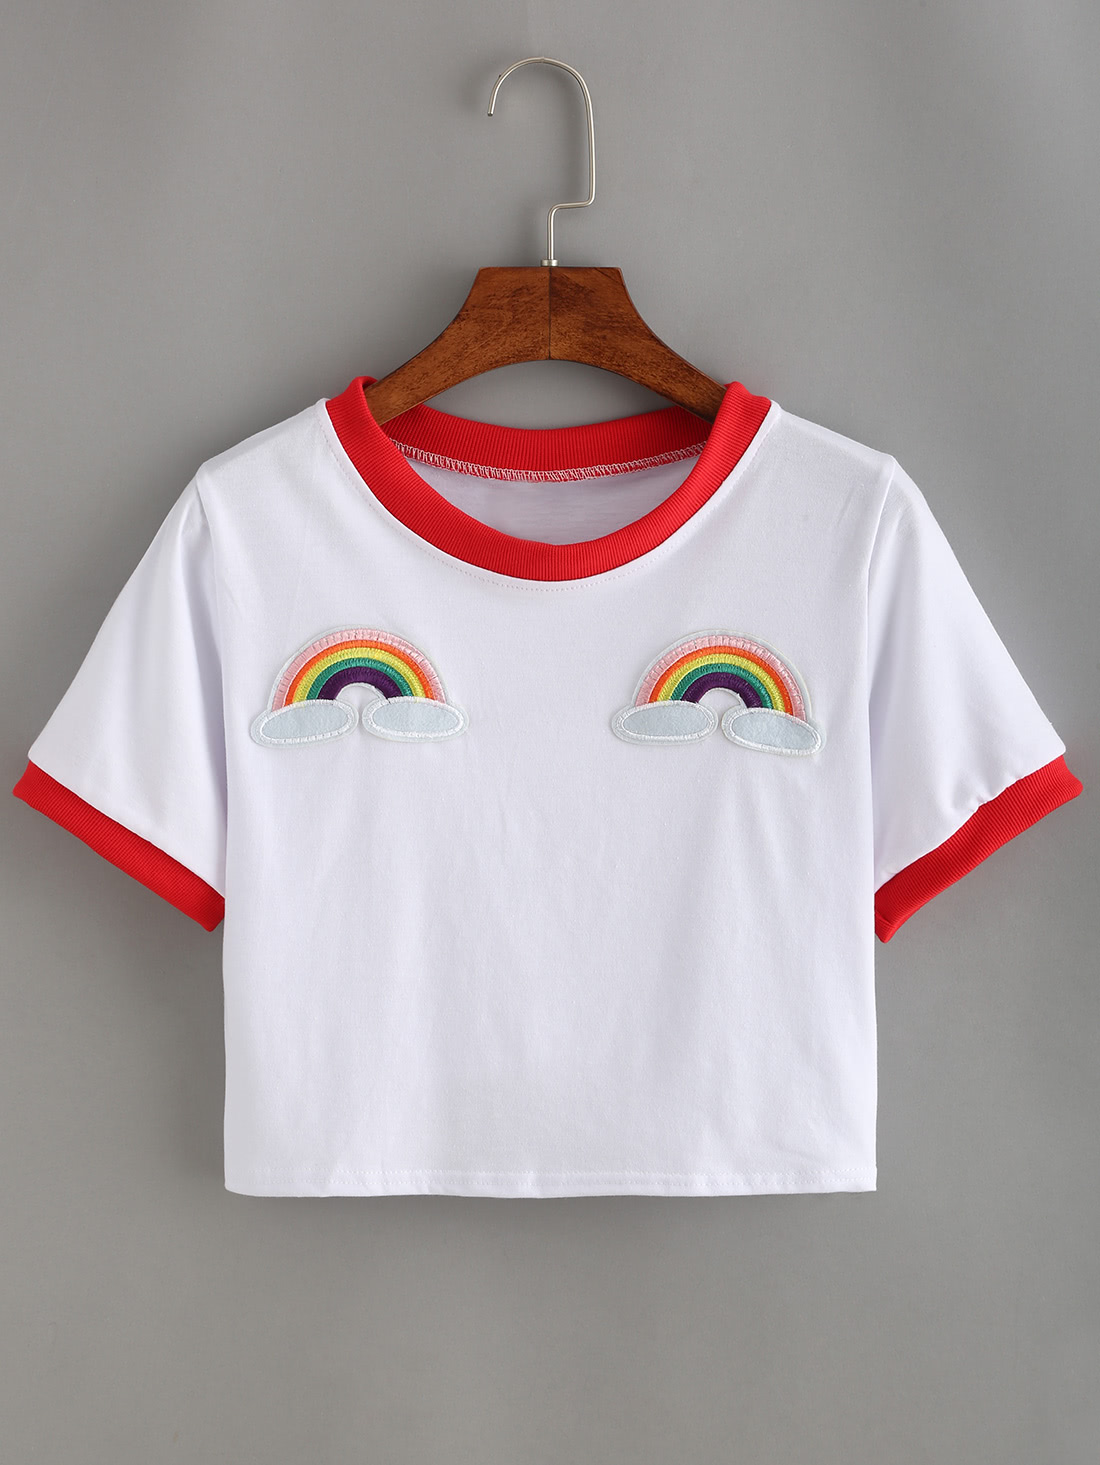 Contrast Trimmed Rainbow Patch Crop T-shirtContrast Trimmed Rainbow Patch Crop T-shirt<br><br>color: White<br>size: one-size